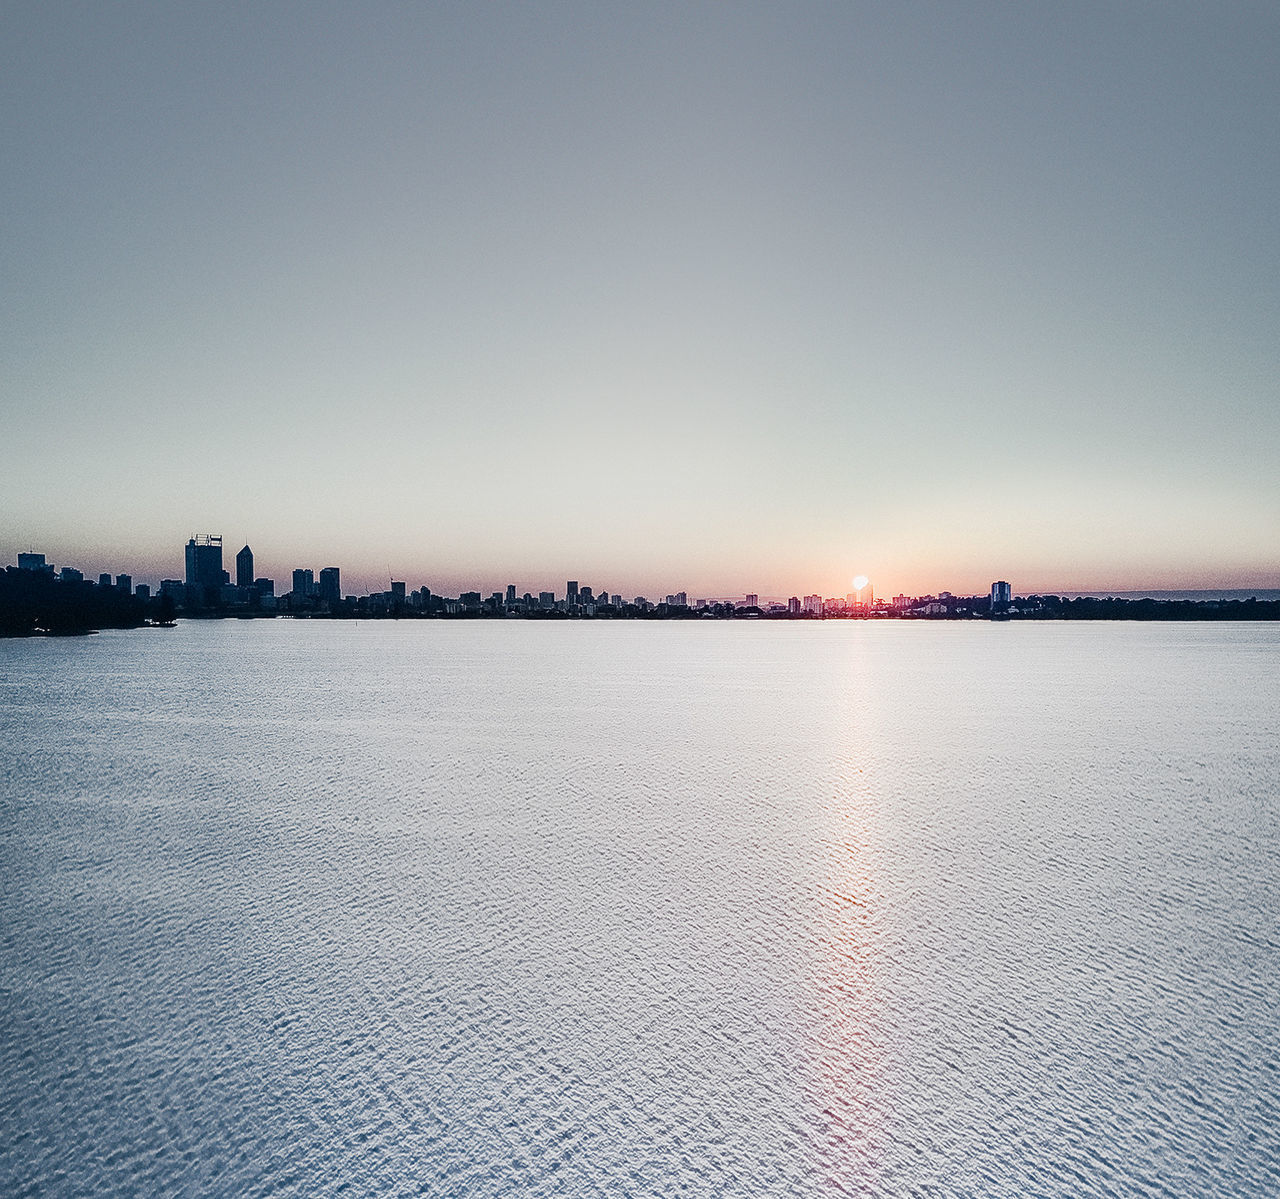 sunset, water, waterfront, architecture, built structure, outdoors, building exterior, sky, city, clear sky, skyscraper, nature, no people, cityscape, river, beauty in nature, sun, tranquility, scenics, urban skyline, day